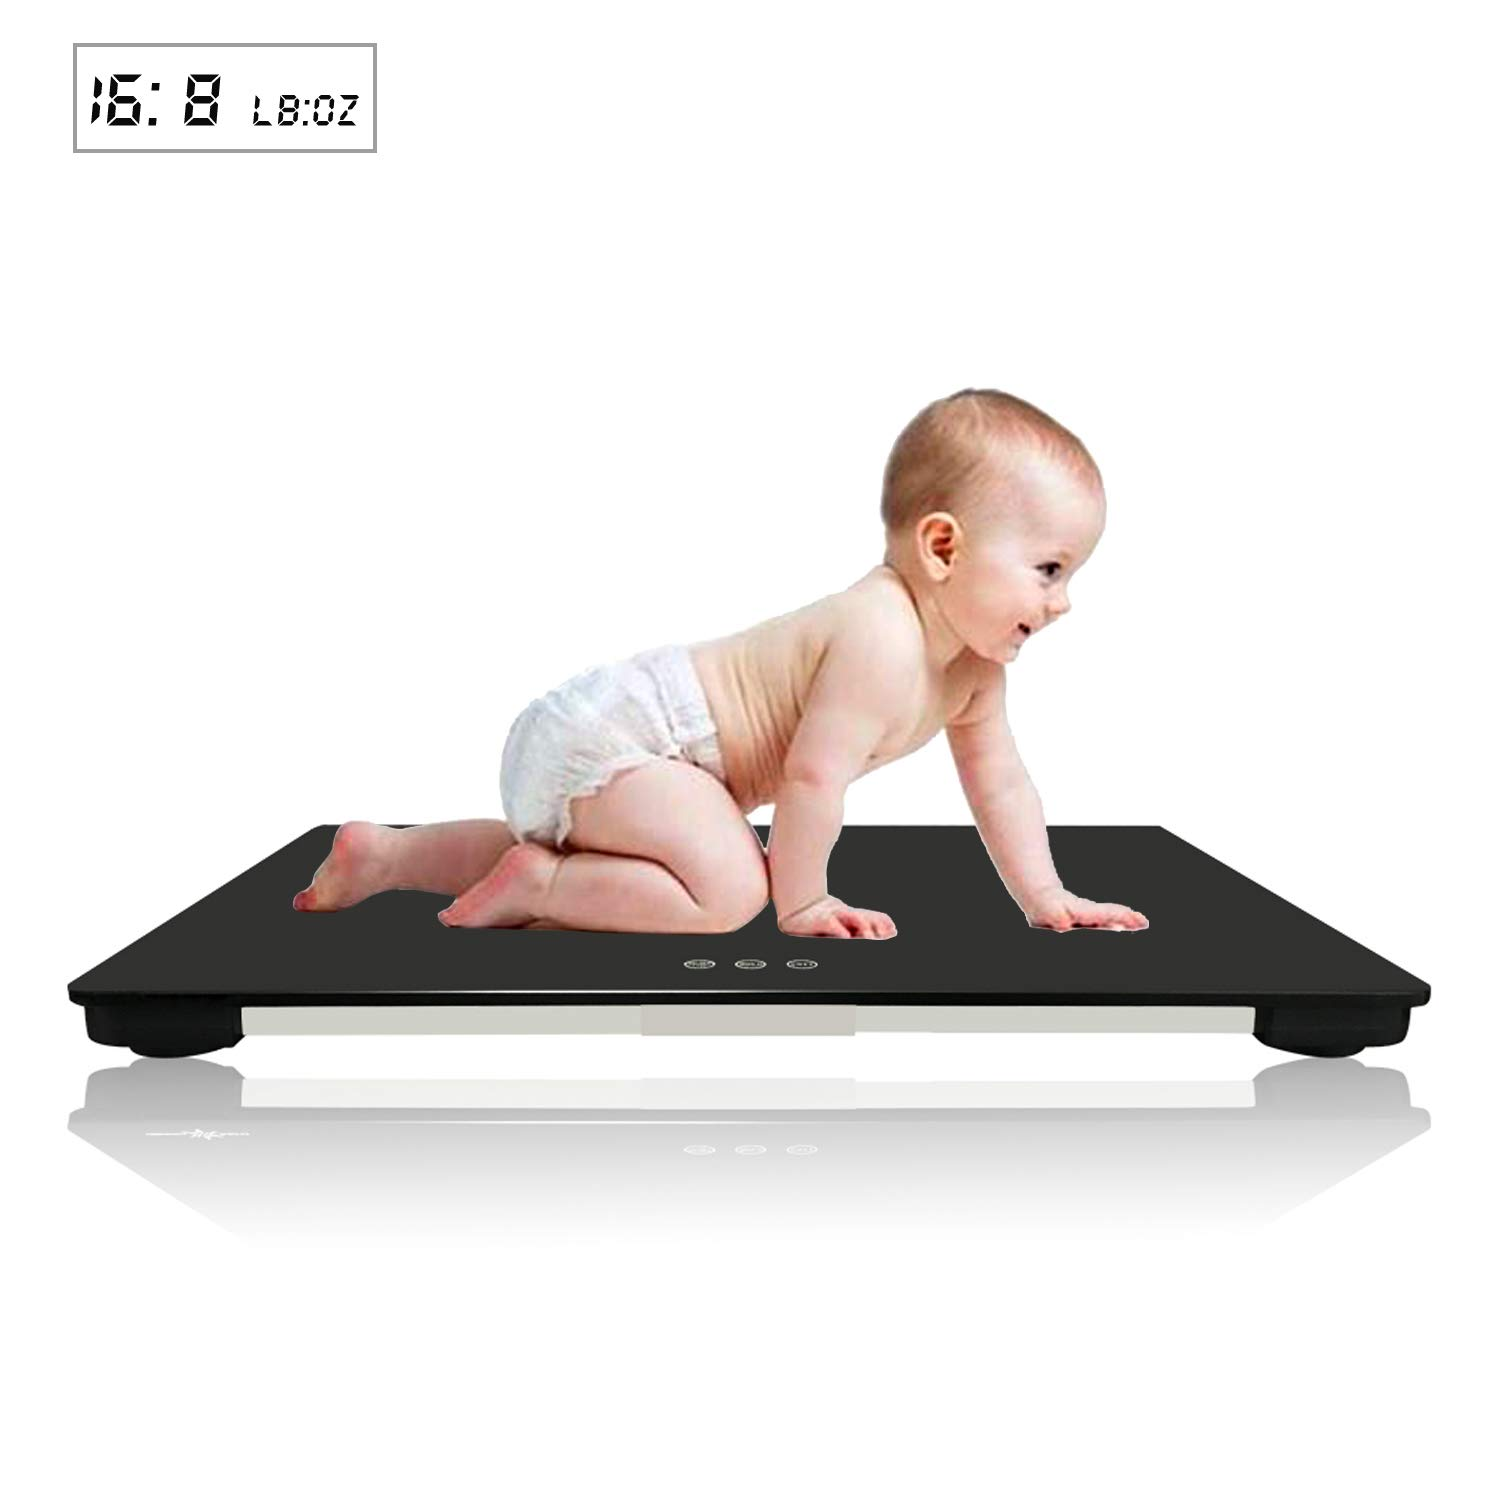 iSnow-Med Digital Baby Scale with Capacity of 220 LBS (± 0.35 OZ), Suitable for Baby/Adult/Pets, KG/LB/LB:OZ (65x45CM)